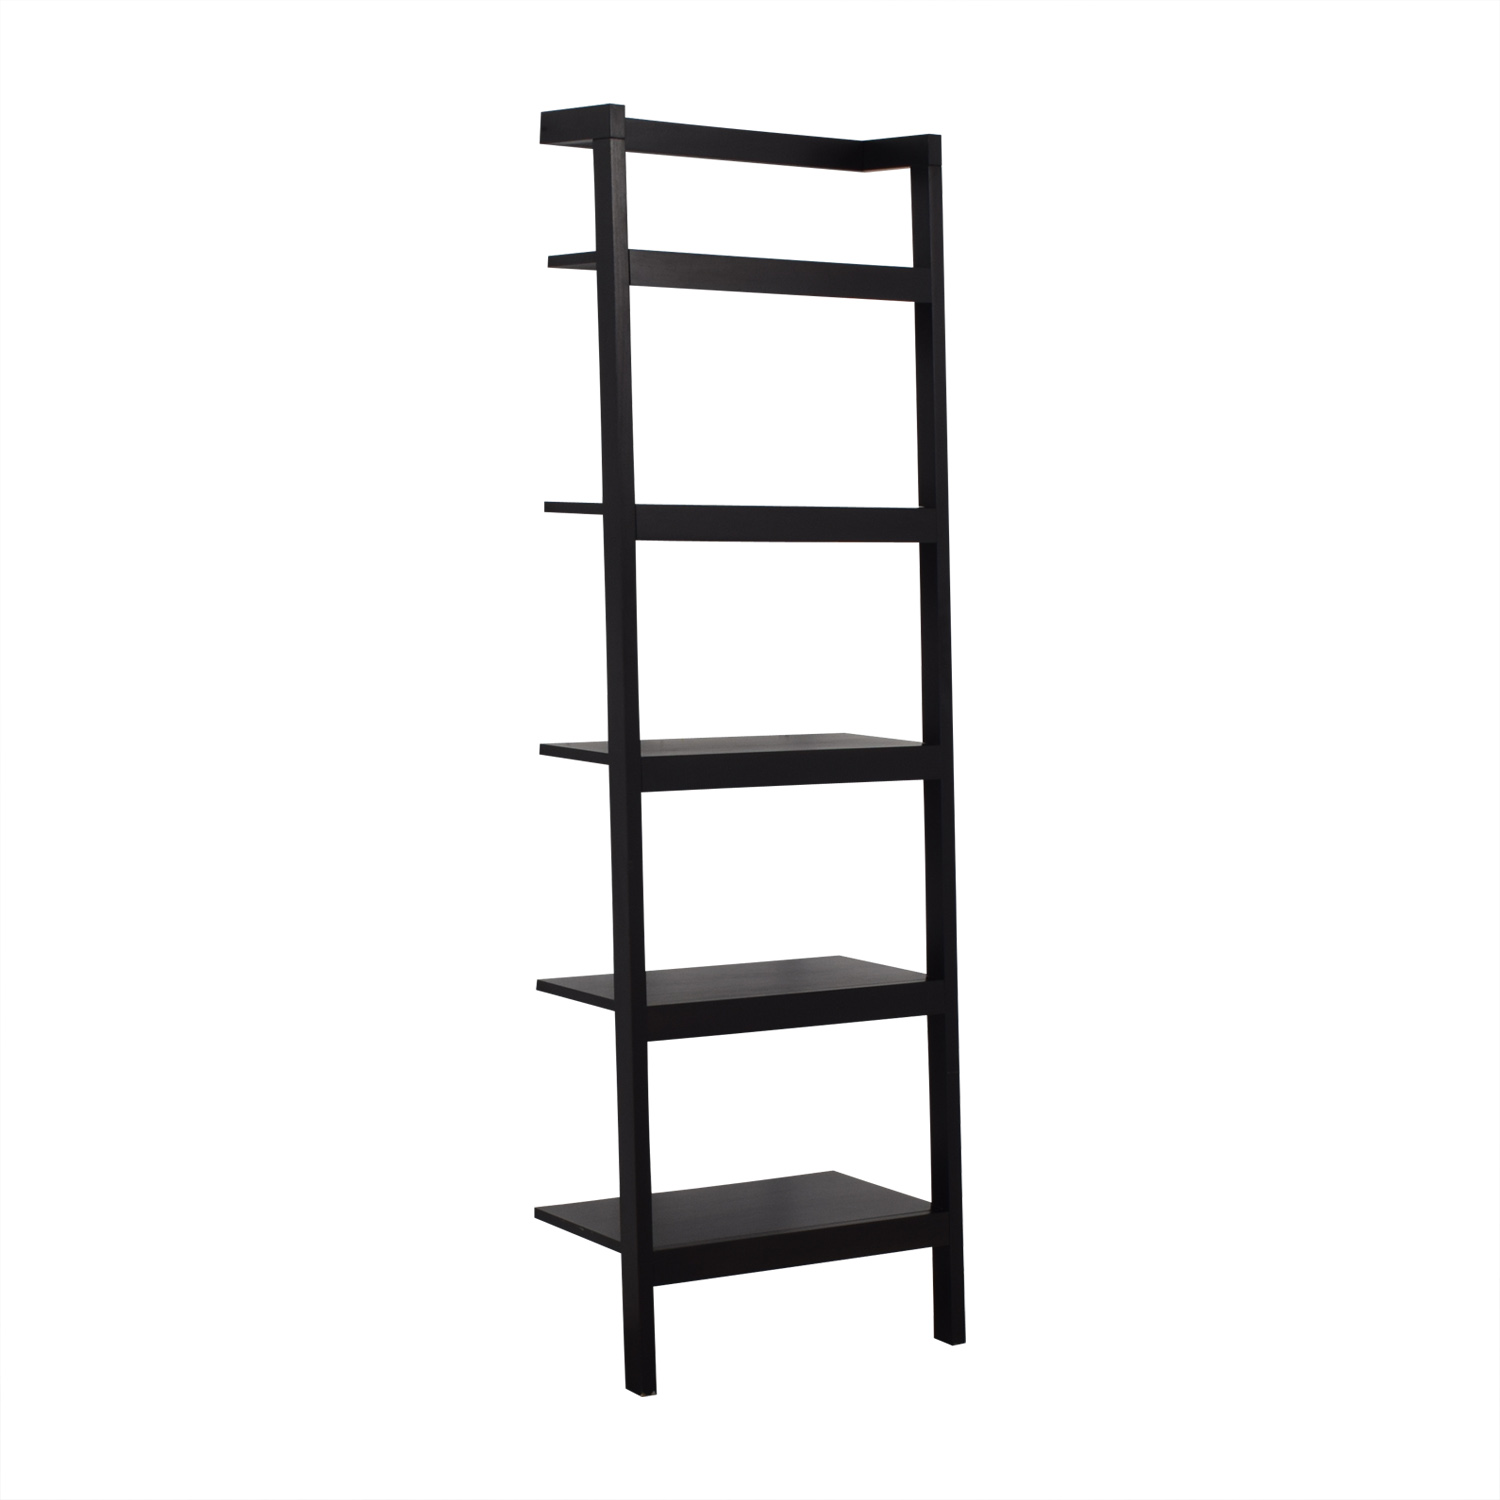 buy Crate & Barrel Sawyer Leaning Bookcase Crate & Barrel Bookcases & Shelving